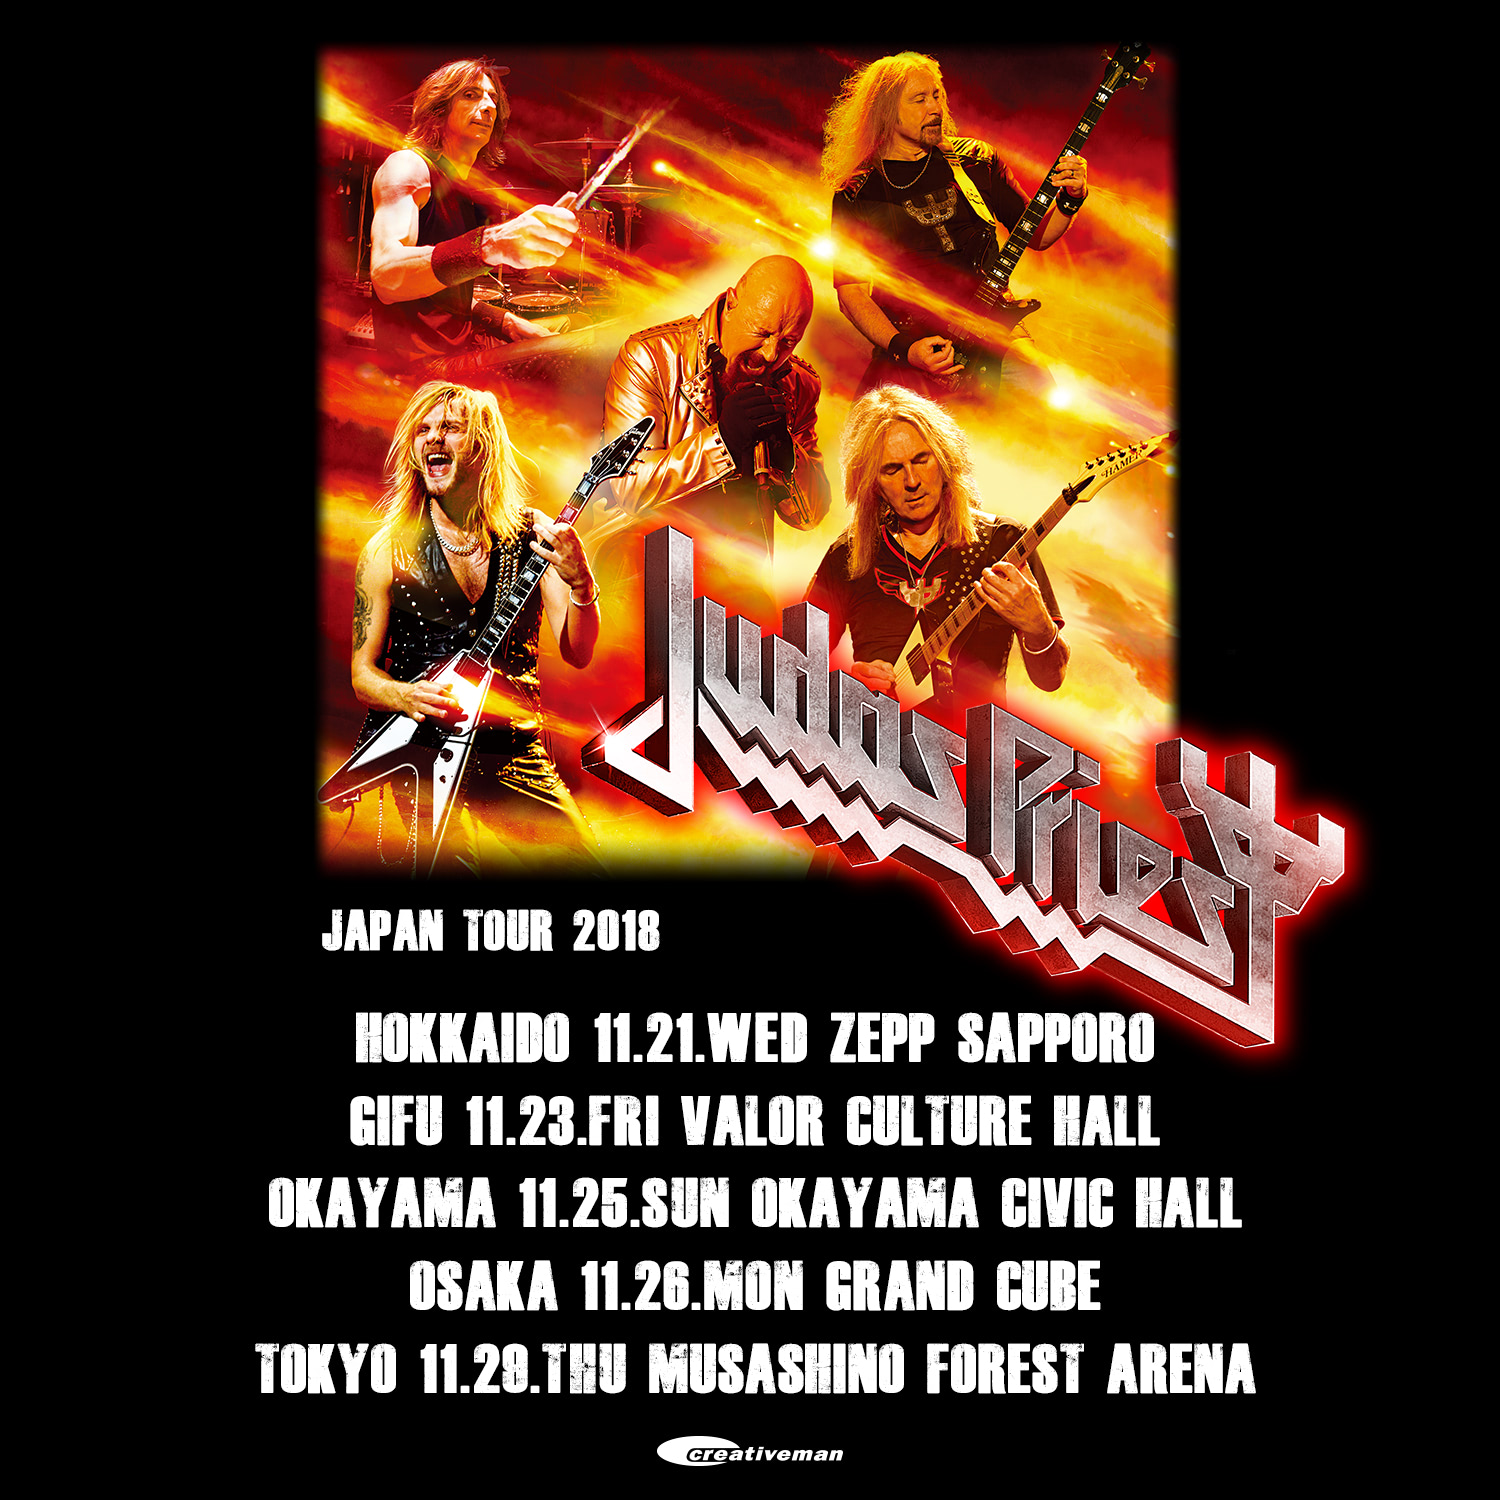 Judas Priest Japan Tour 2018